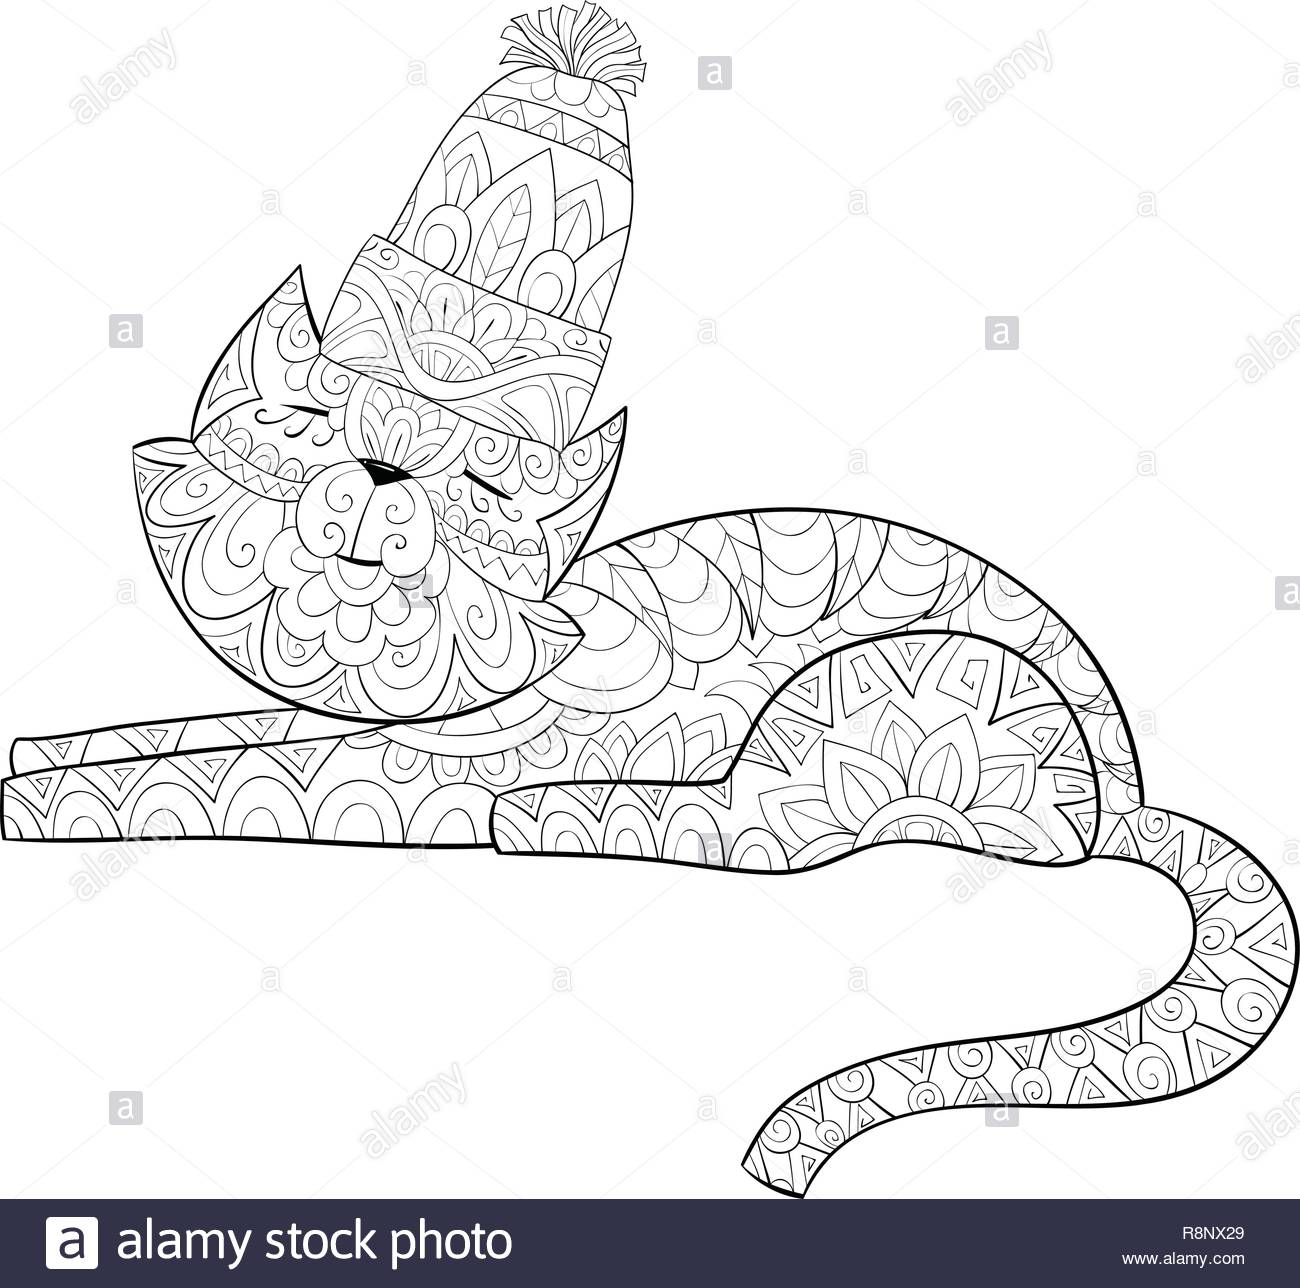 6f53de784 A cute cat wearing a Christmas cap with ornaments image for relaxing  activity.A coloring book,page for adults.Zen art style illustration for  print.Pos